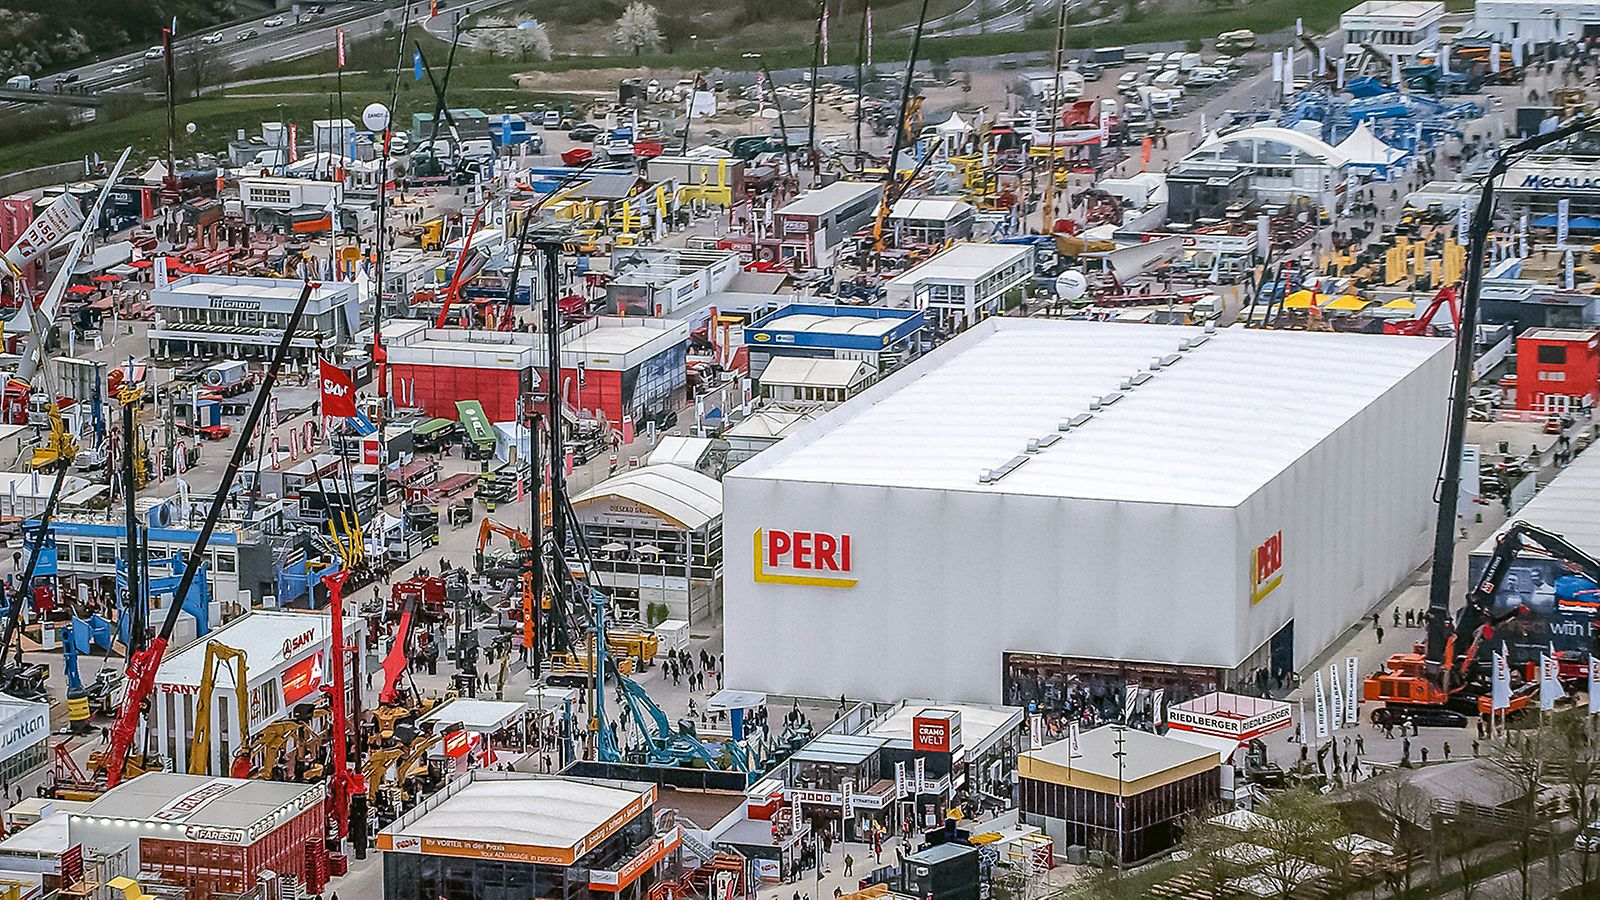 PERI at the bauma - Heli Photo